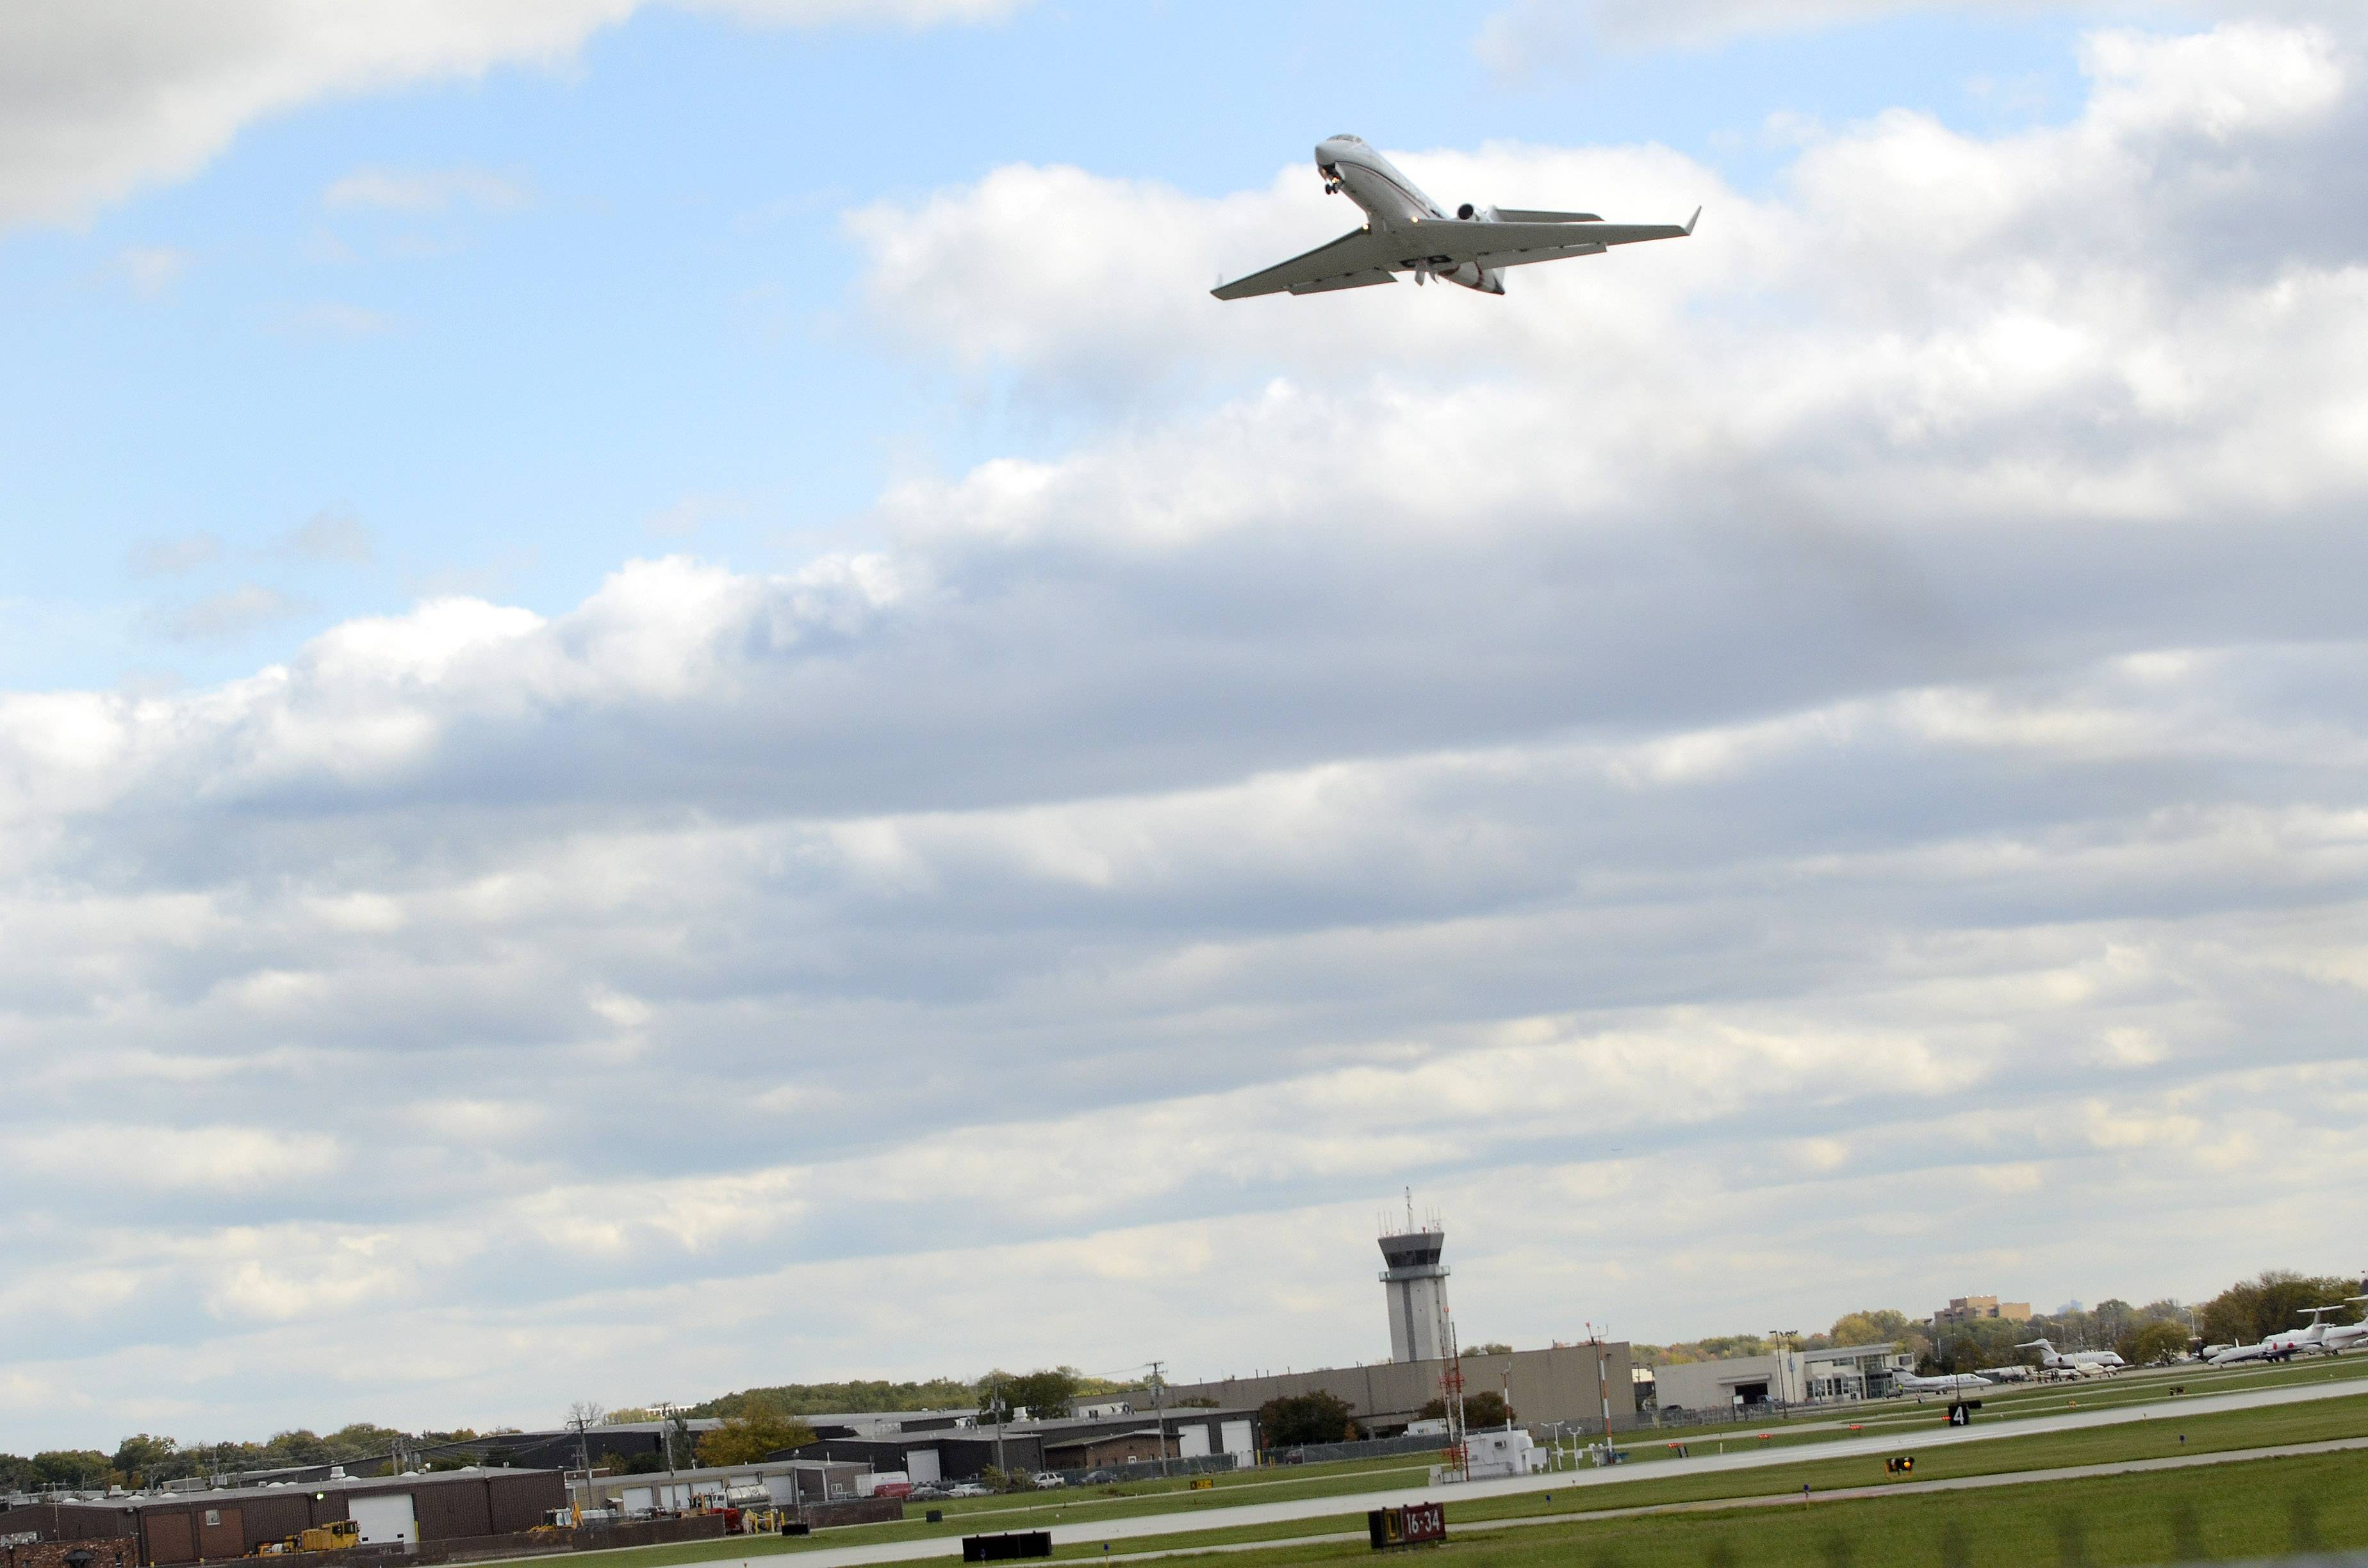 The Chicago Executive Airport board will study whether to extend a runway there by 2,000 feet, possibly affecting surrounding neighborhoods, in order to serve larger corporate jets.